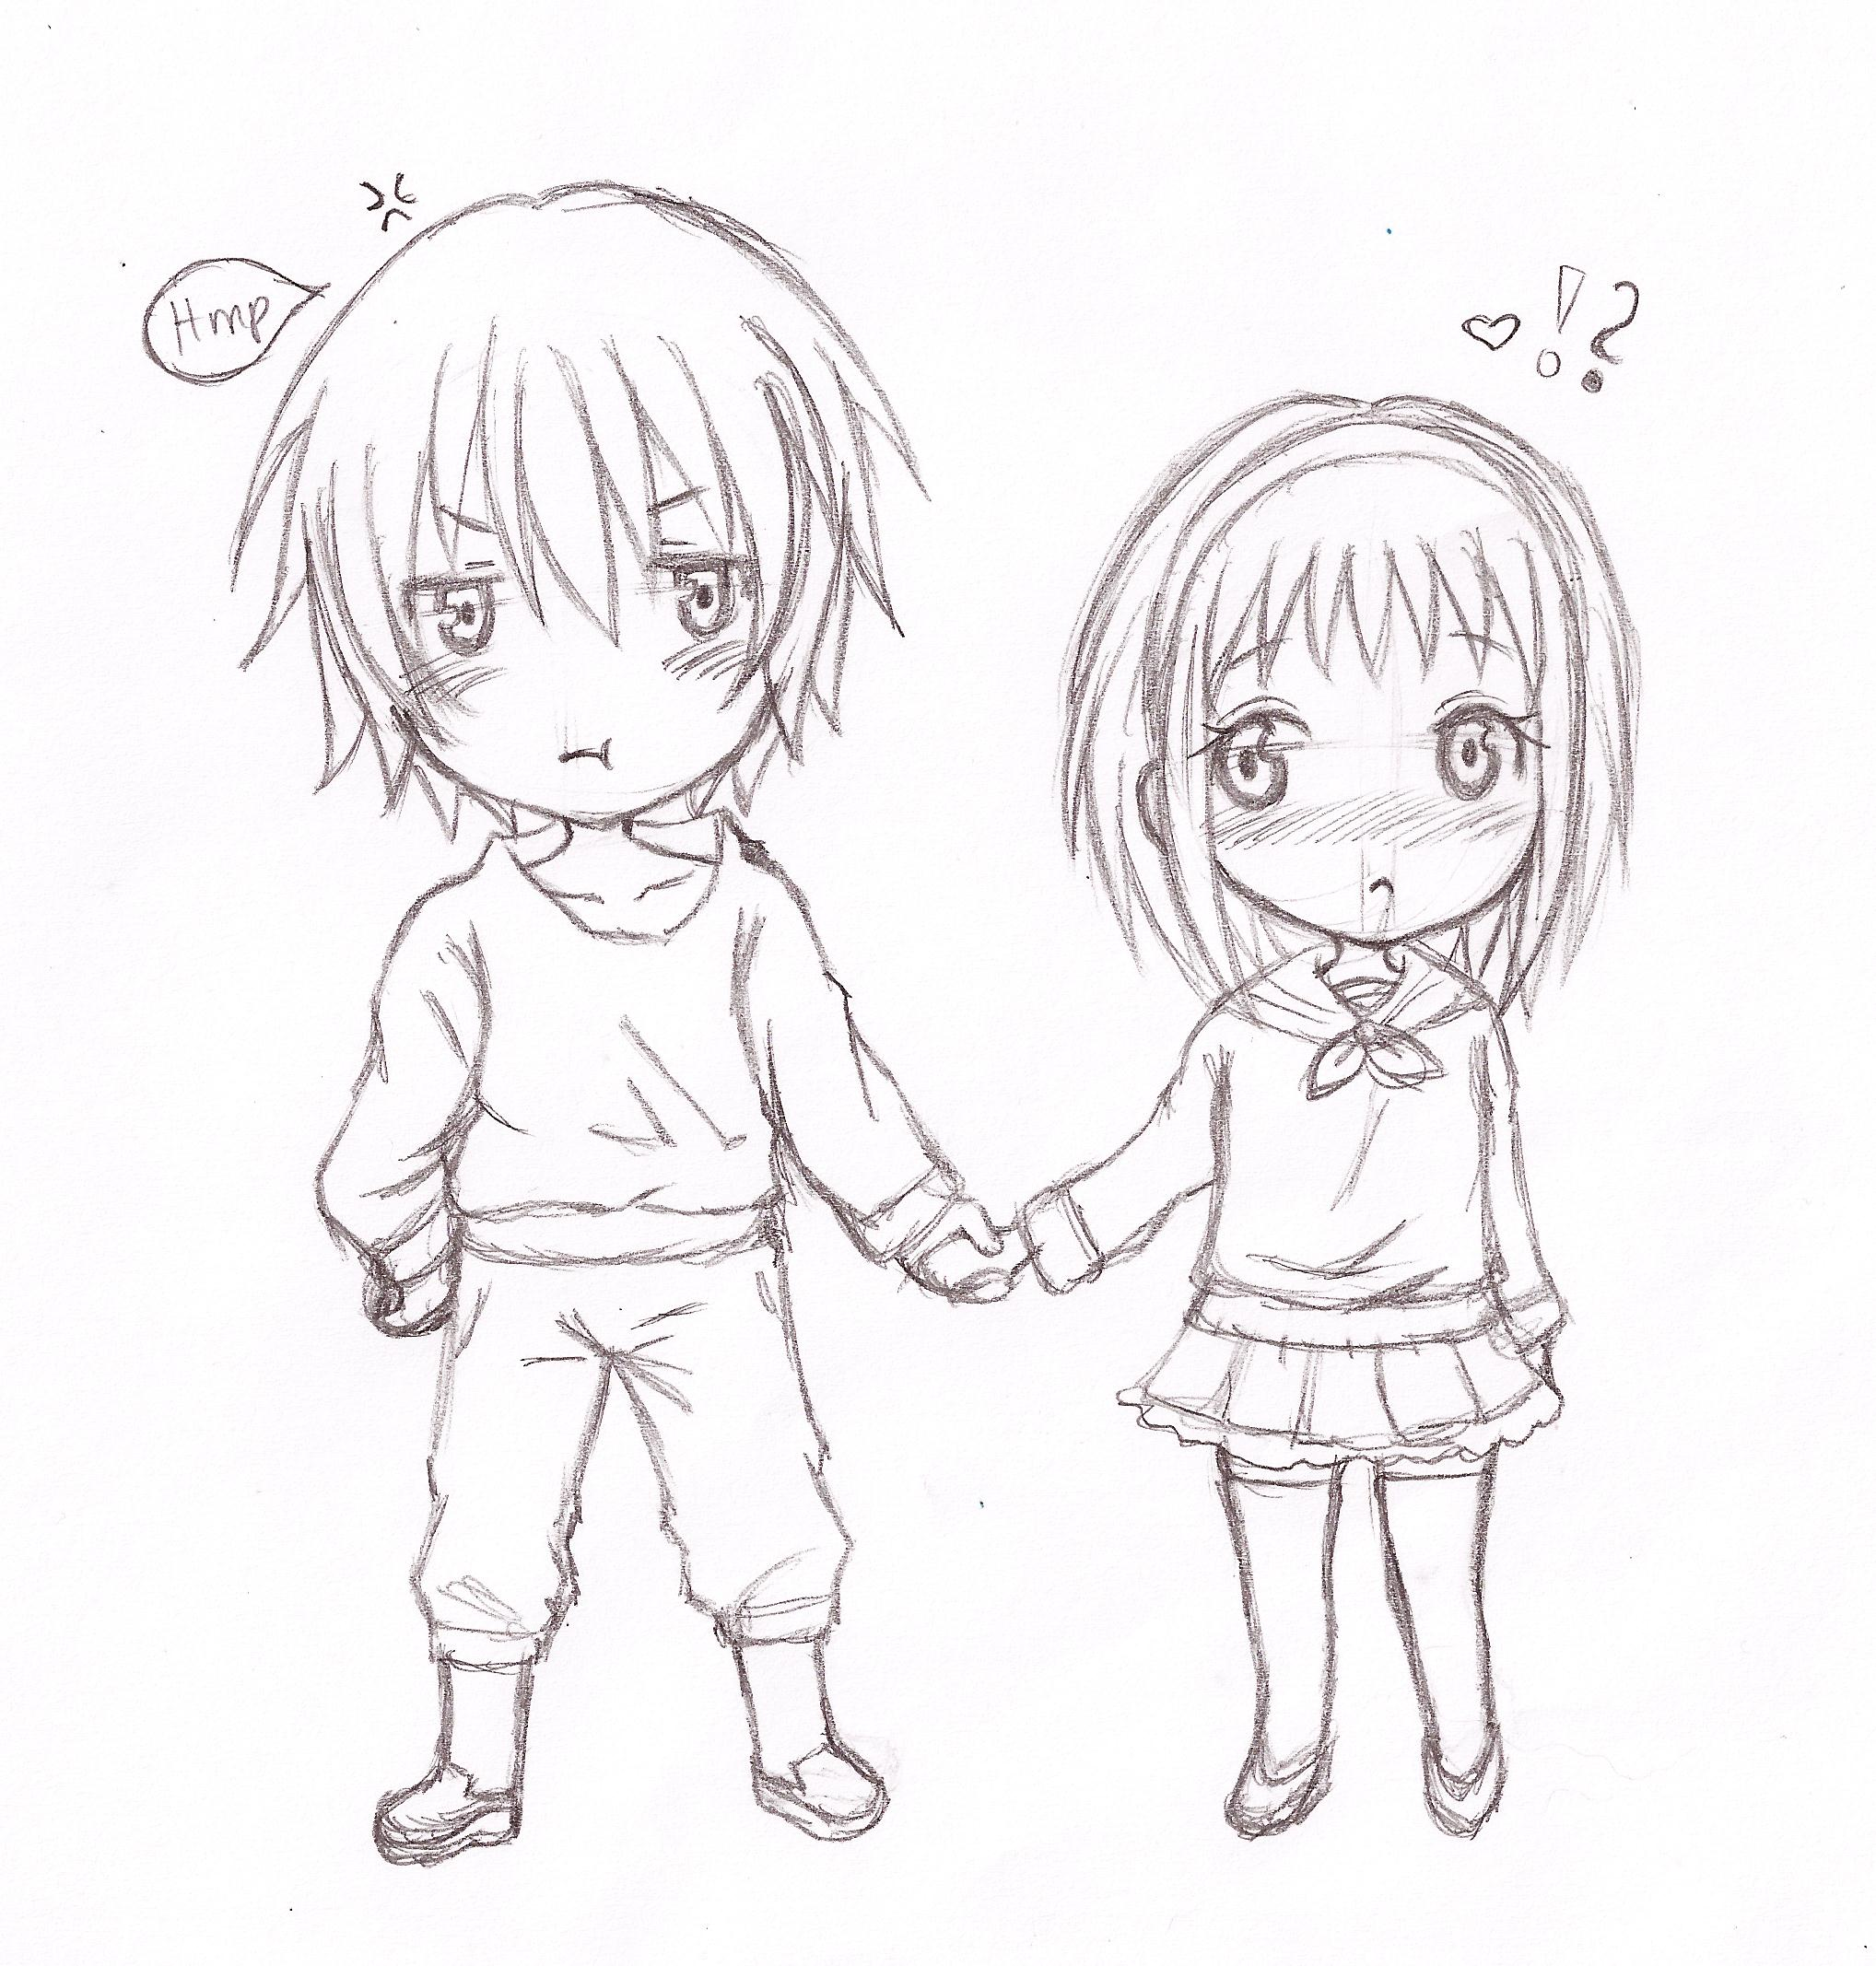 ocs haruko and suki chibi style sketch by jasichan16 d5heecm furthermore celtic triangle coloring page   pagespeed ce IUONAxL4Y7 additionally indian cobra coloring pages moreover TJ SVG christmas wreath decoration 2 also kolibri likewise  likewise e1e0222c3fe237d5617aeb20b81b79f2 in addition how to draw Shere Khan from The Jungle Book step 0 furthermore rogue pollination by legendarysid d6qe9f3 additionally ulysses butterfly coloring 2 besides bulbasaur. on vine coloring pages of animals